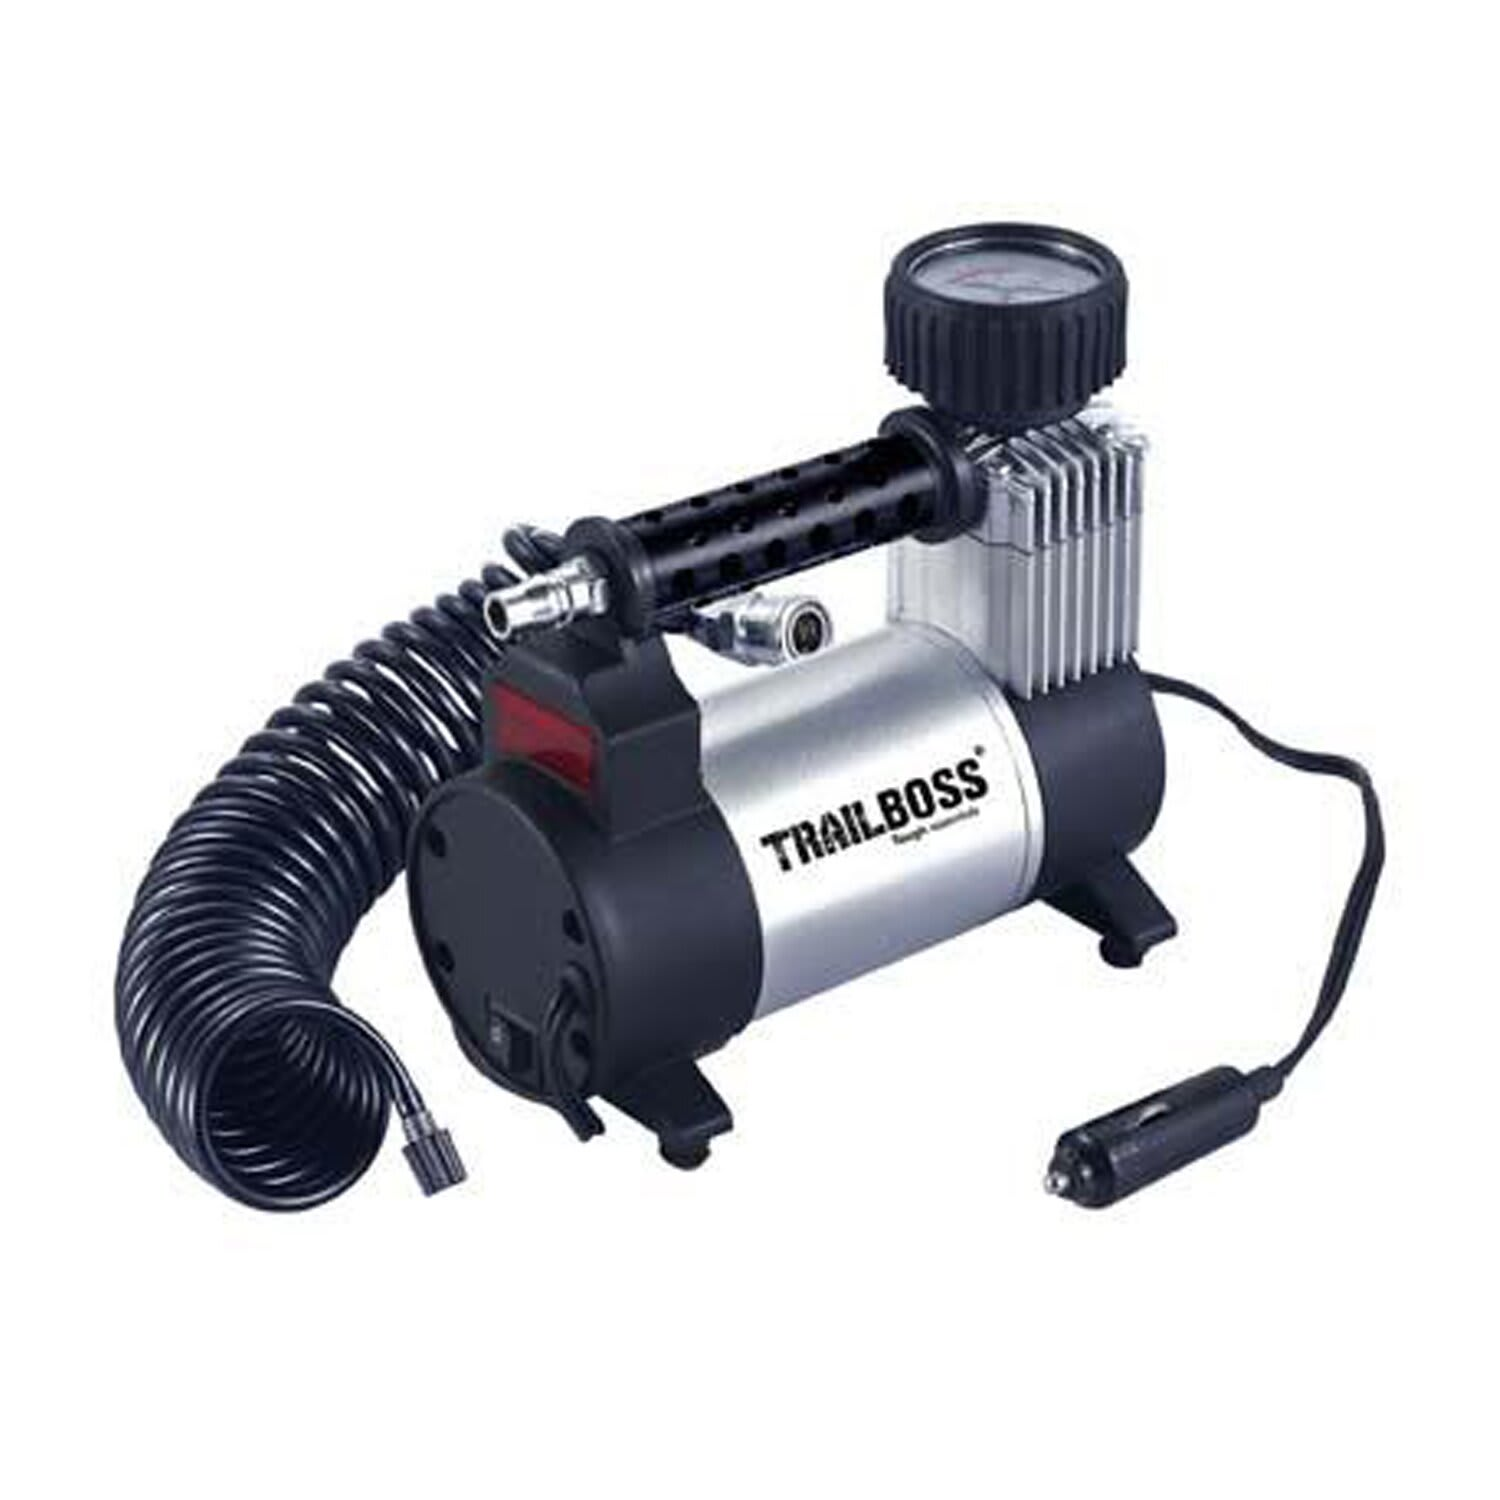 TrailBoss 35L Compressor